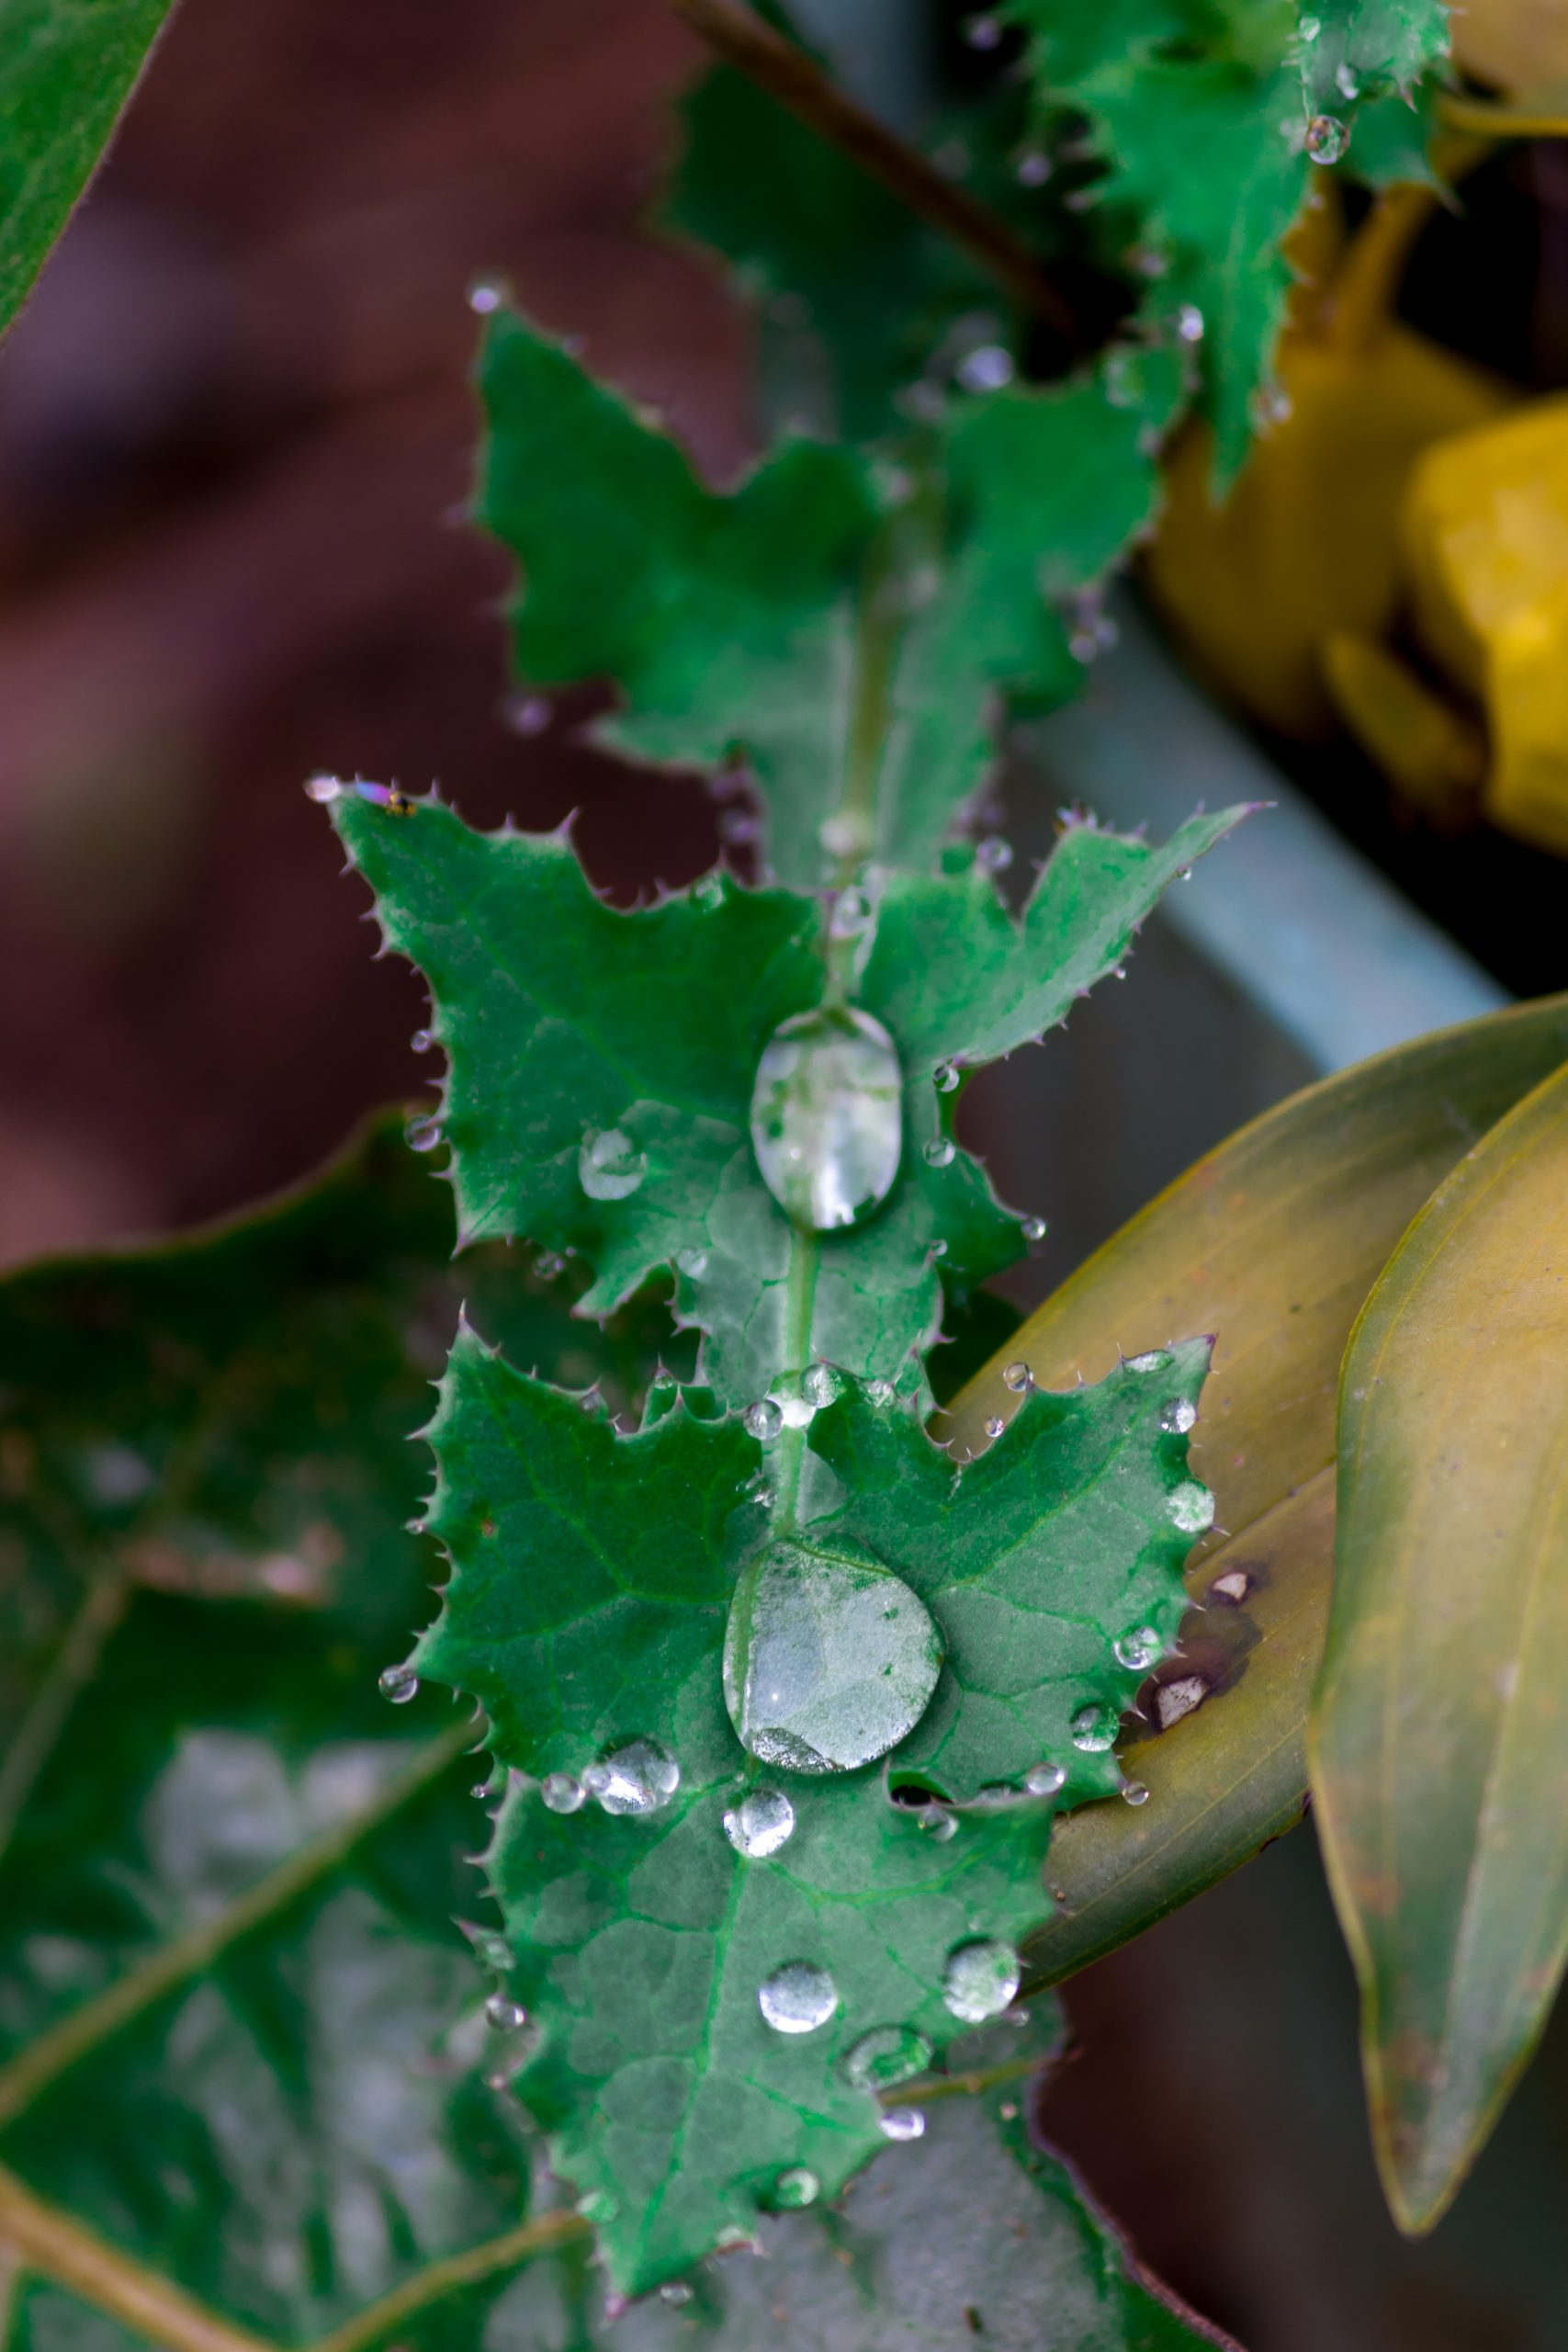 Water drops on a leaf